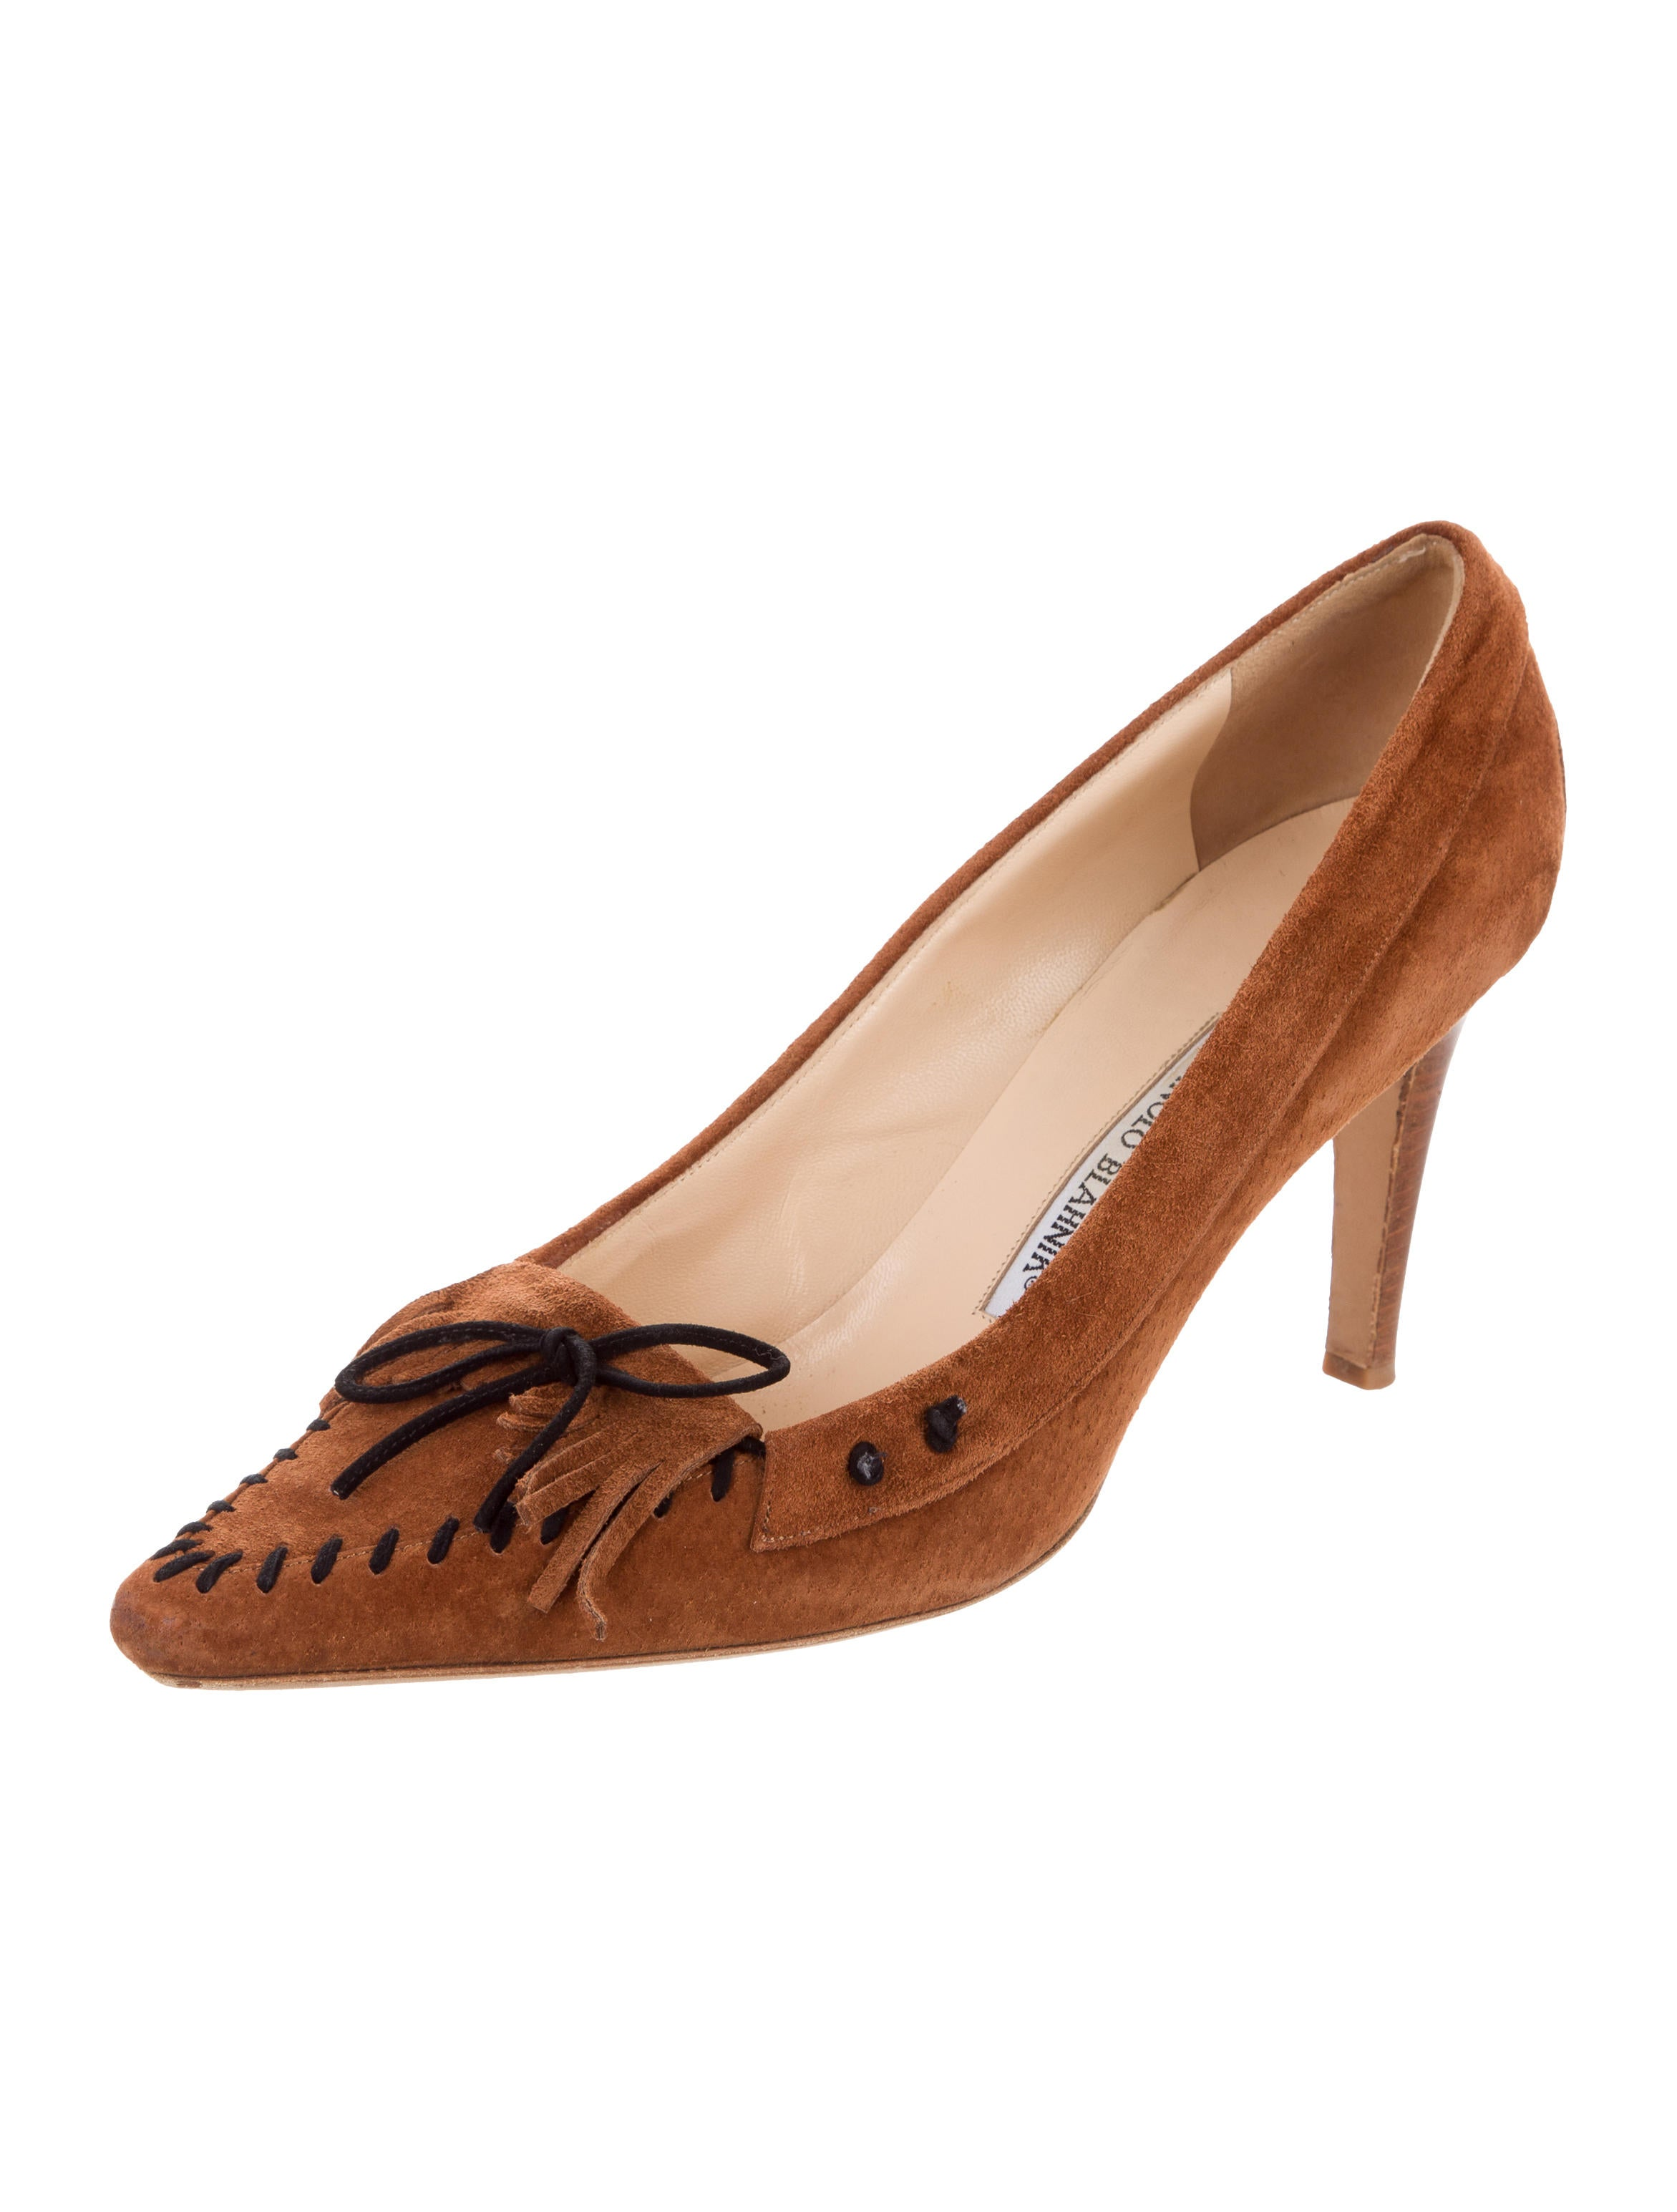 clearance websites cheap discount sale Manolo Blahnik Suede Kiltie Pumps high quality free shipping discounts 7ccH1